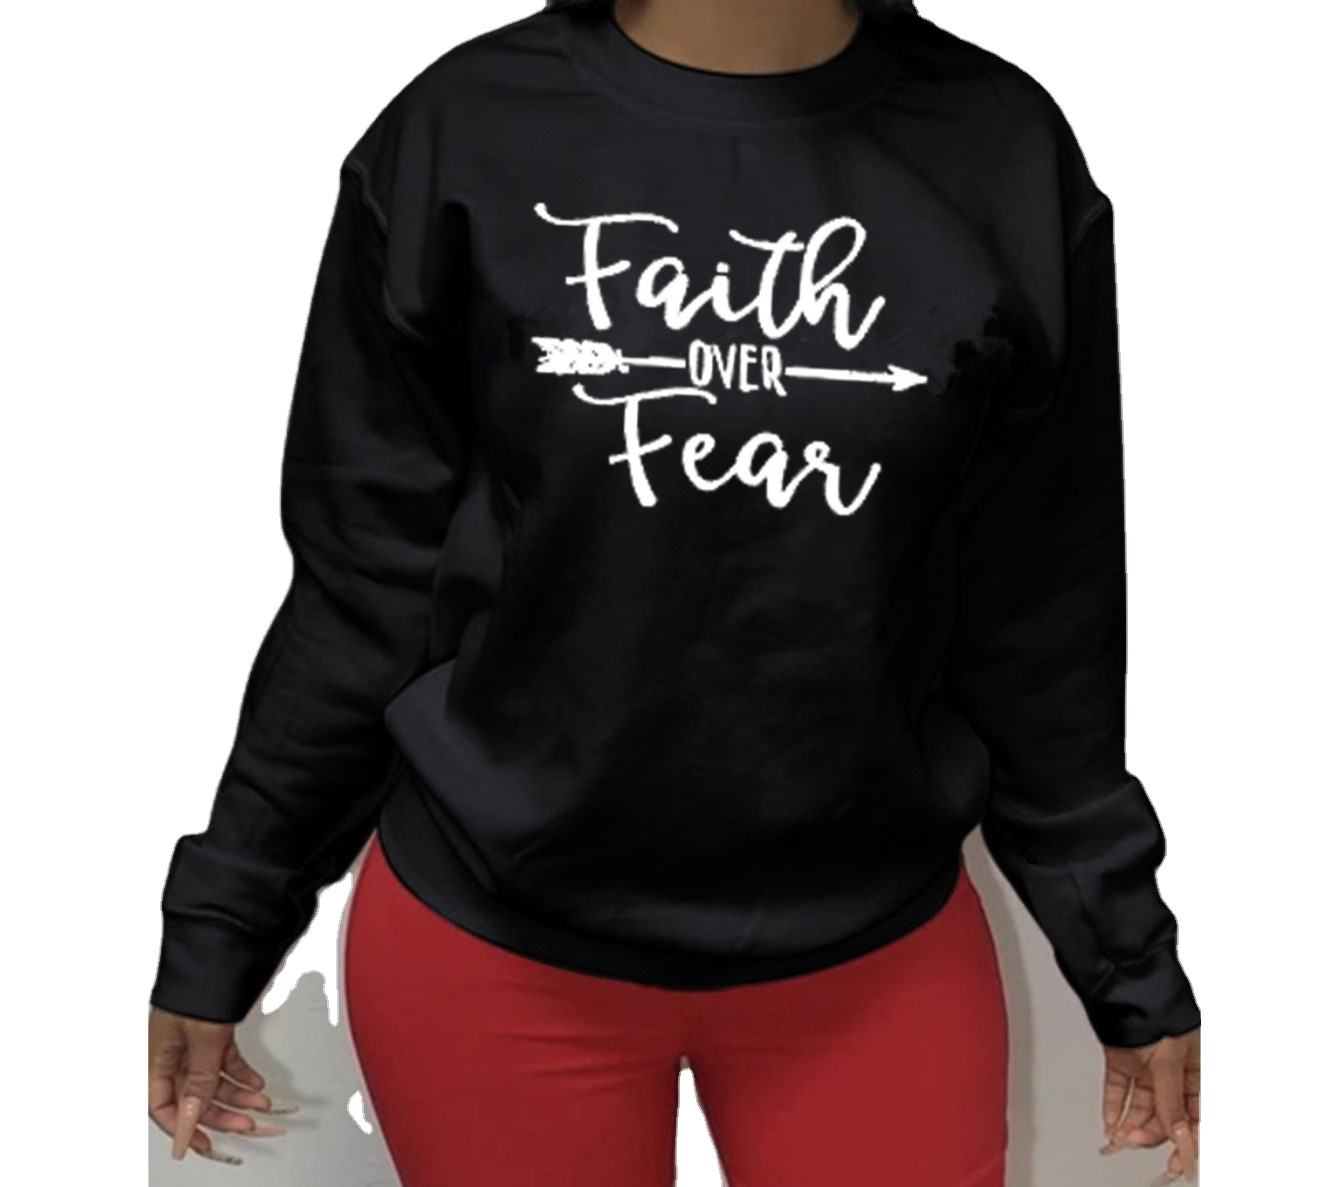 New Hot Sale Fashion Plus Size Sweater Shirt Faith Over Feaq Printed O-neck Pullover Long Sleeve Sweater Casual Loose Women